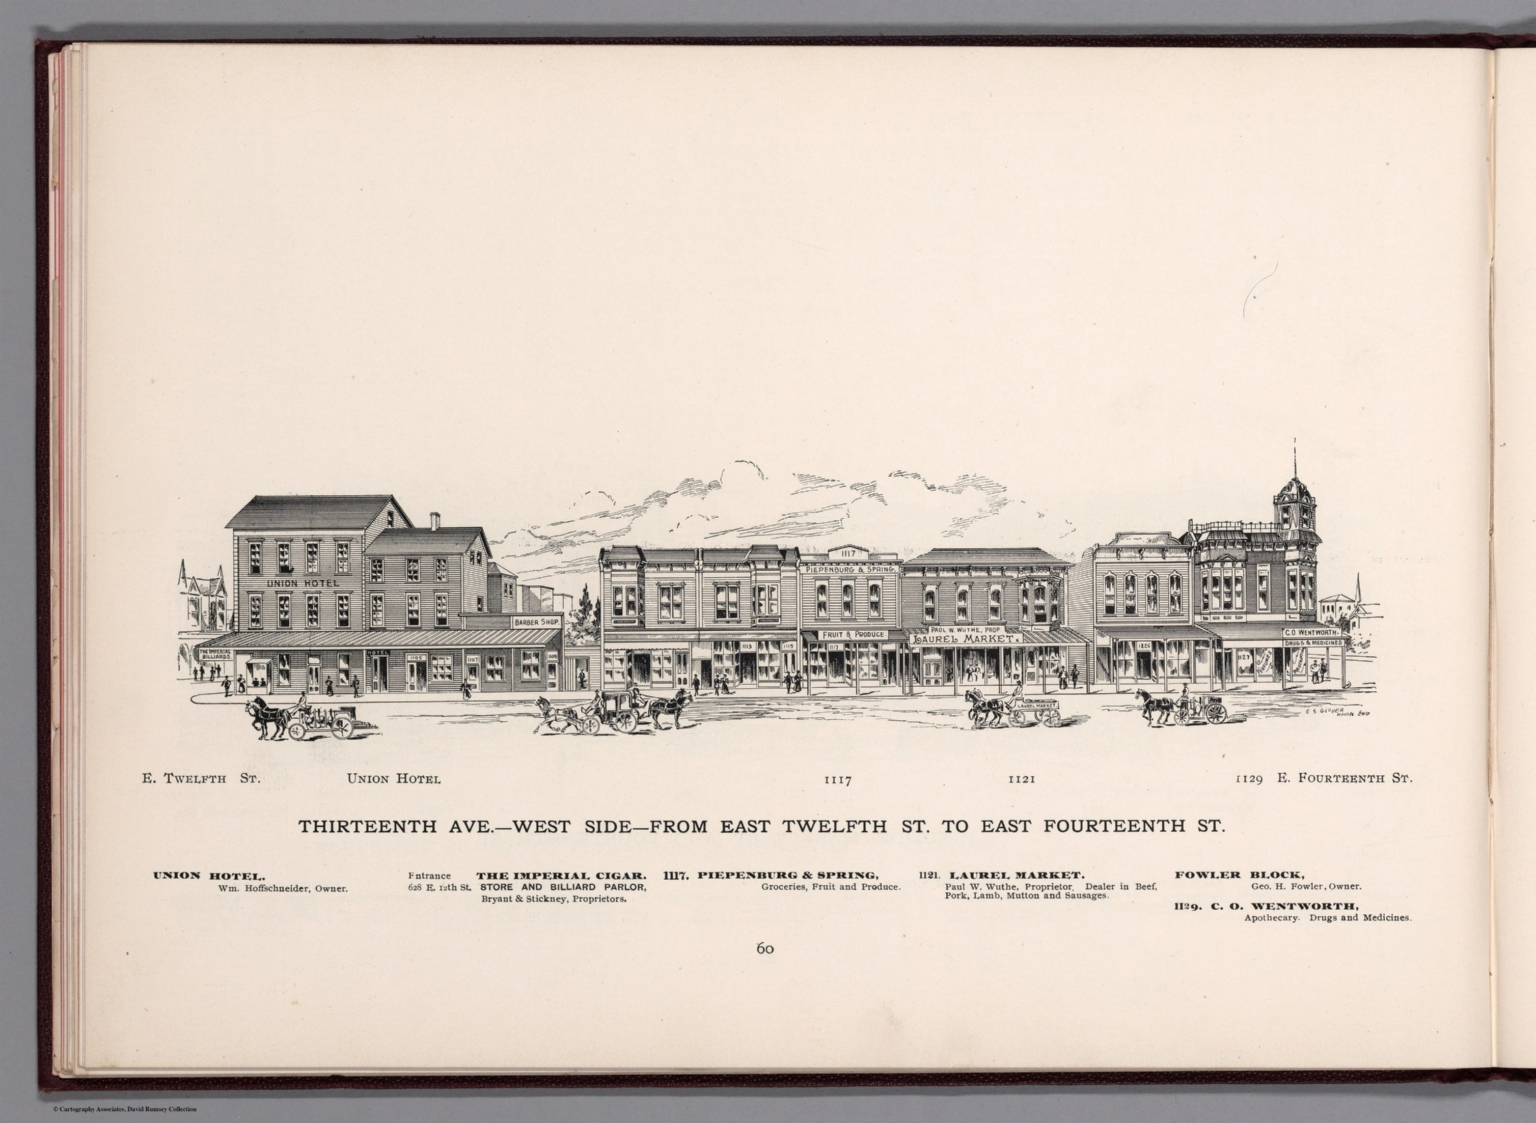 View: Thirteenth Ave. - West Side - from East Twelfth St. to East Fourteenth St.